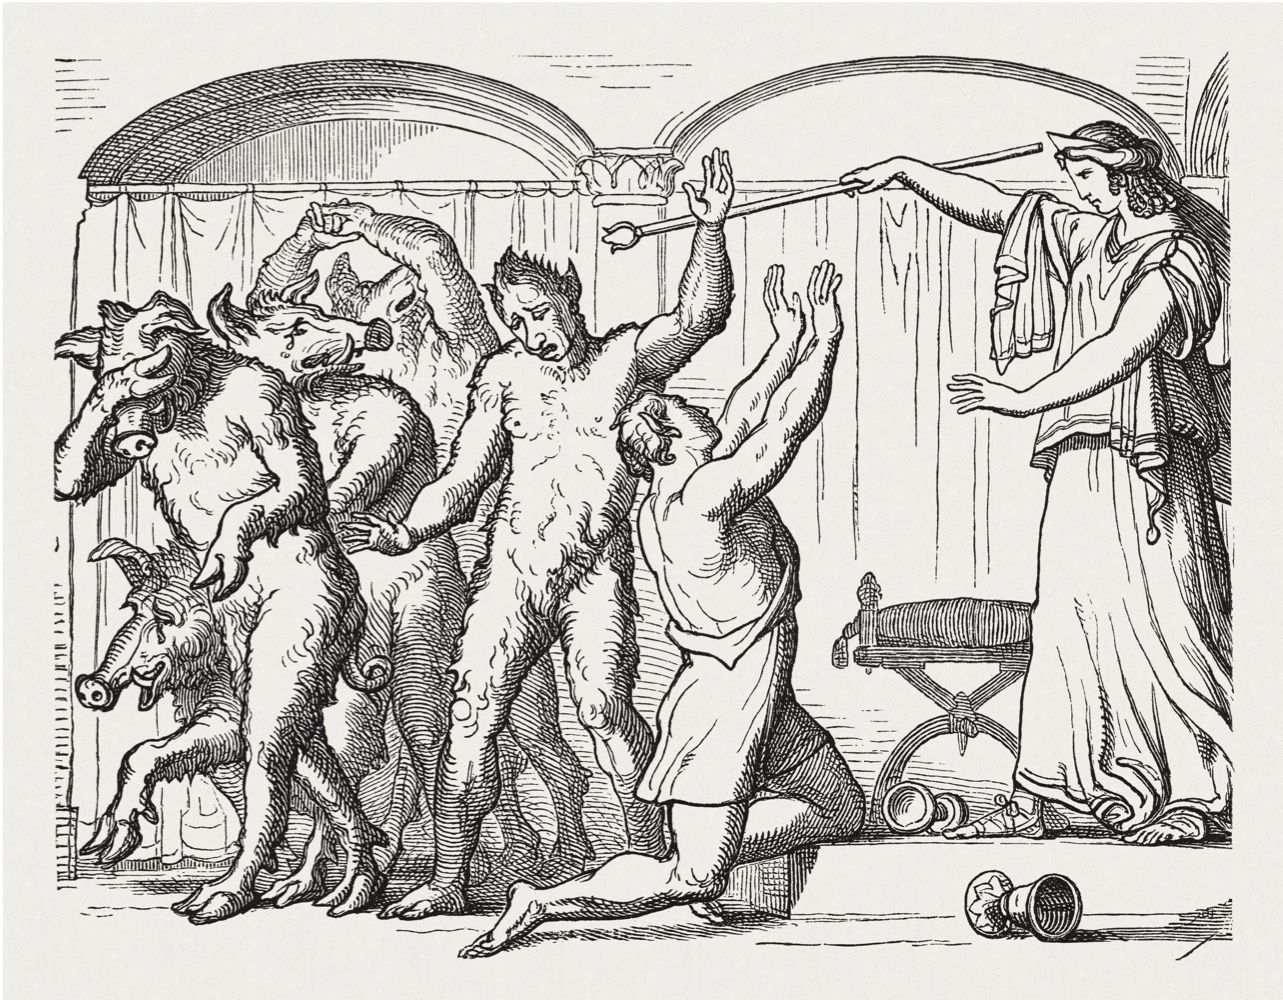 """Circe transforms Odysseus' companions into pigs. Scene from the Greek Mythology. Wood engraving from the book """"Die schönsten Griechischen Sagen aus dem Altertum (The best Greek legends of antiquity)"""" published by F. Carl and Hermann Mehl. Printed by Otto Spamer, Leipzig in 1880"""